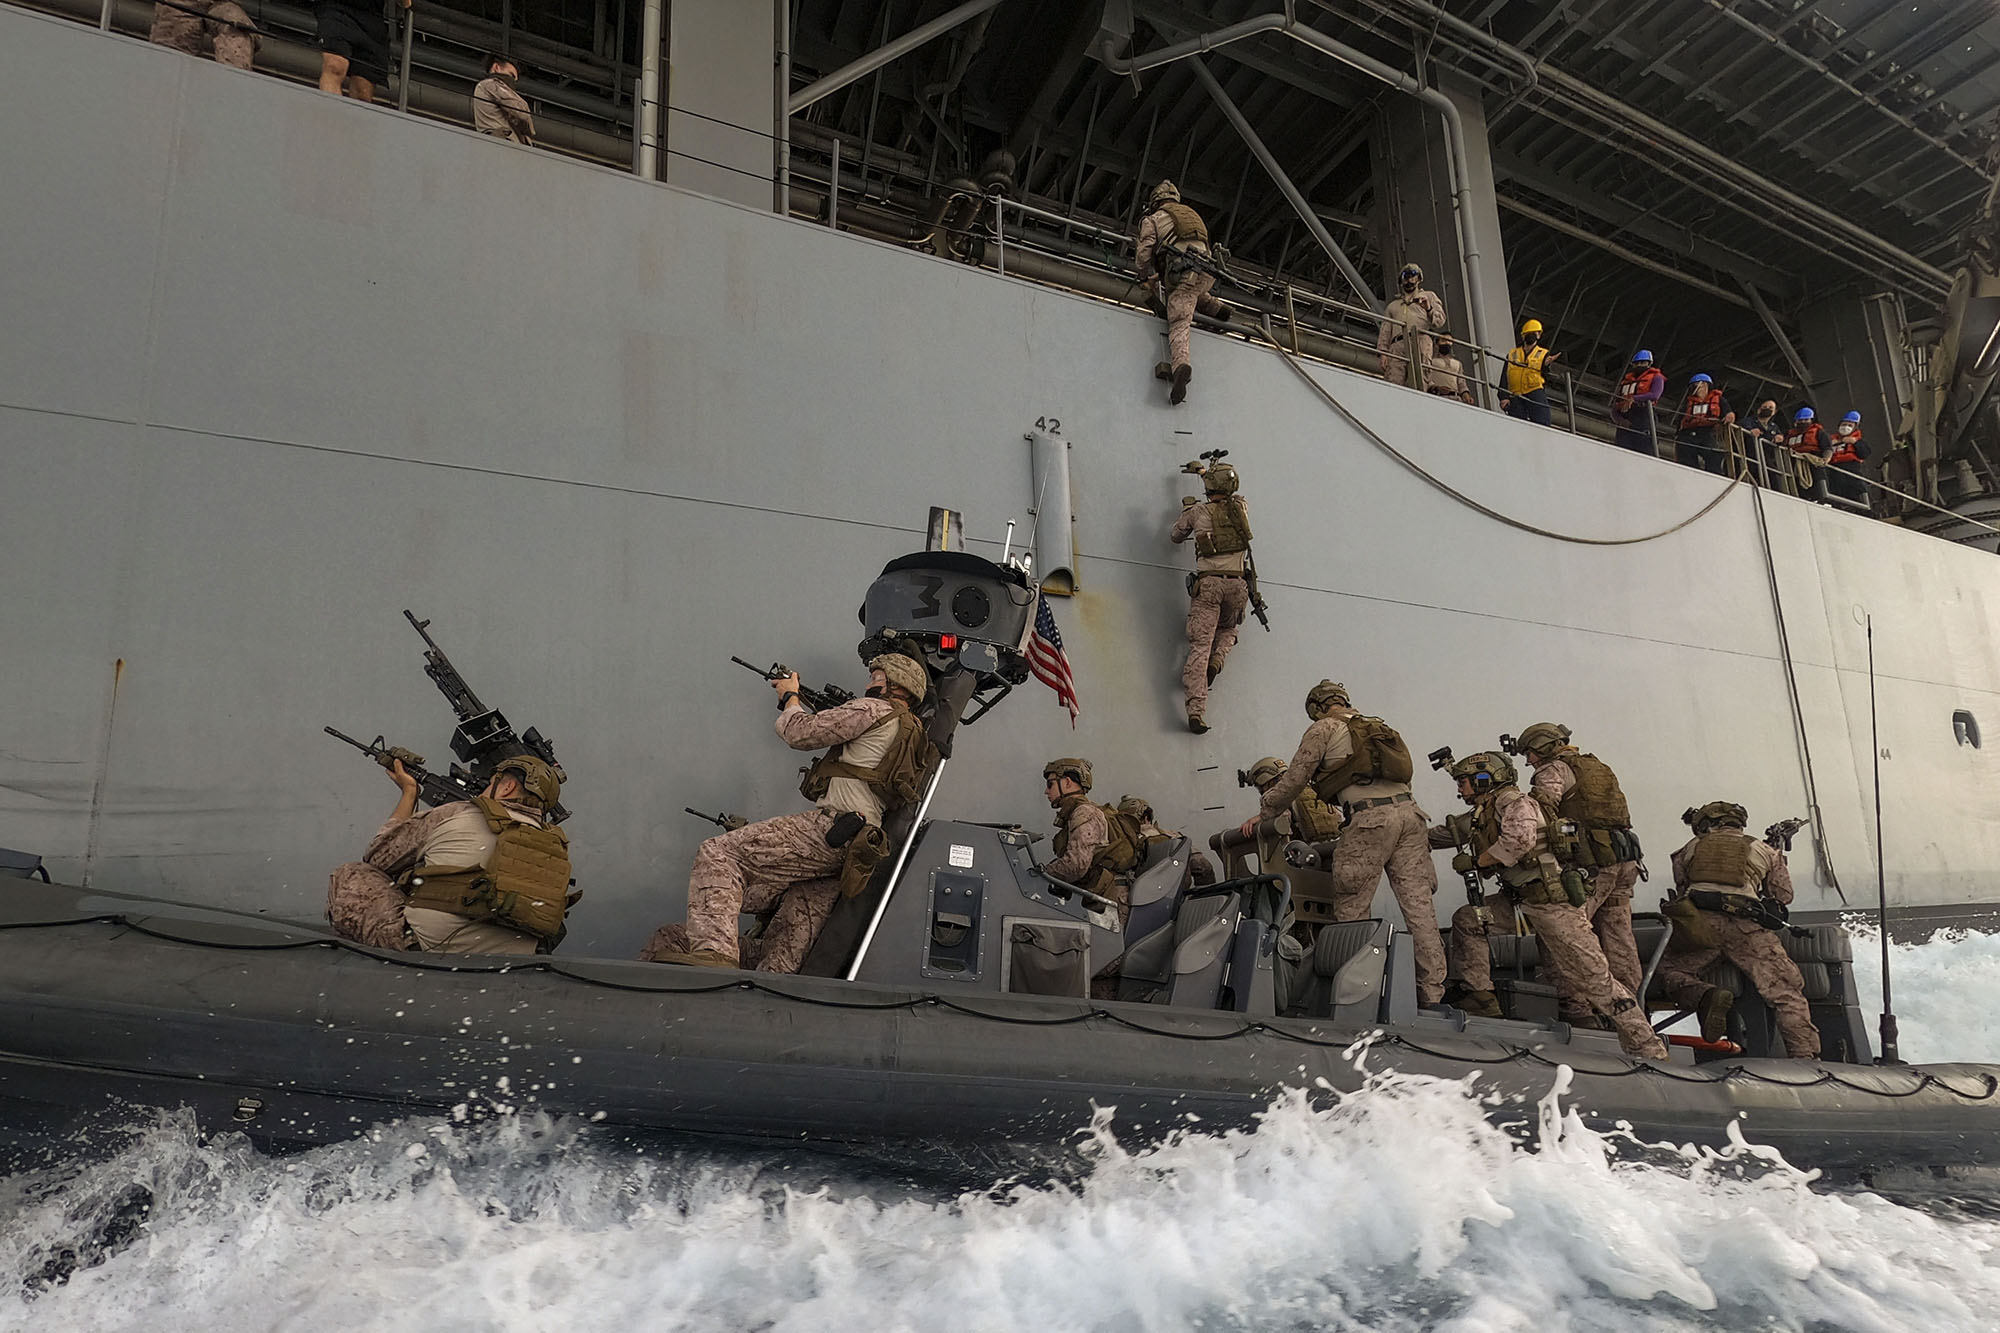 Marines assigned to the All-Domain Reconnaissance Detachment, 15th Marine Expeditionary Unit (MEU), board expeditionary sea base USS Lewis B. Puller (ESB 3) from an 11-meter rigid-hull inflatable boat during visit, board, search and seizure training in the Arabian Gulf, March 19, 2021. (Sgt. Sarah Stegall/Marine Corps)